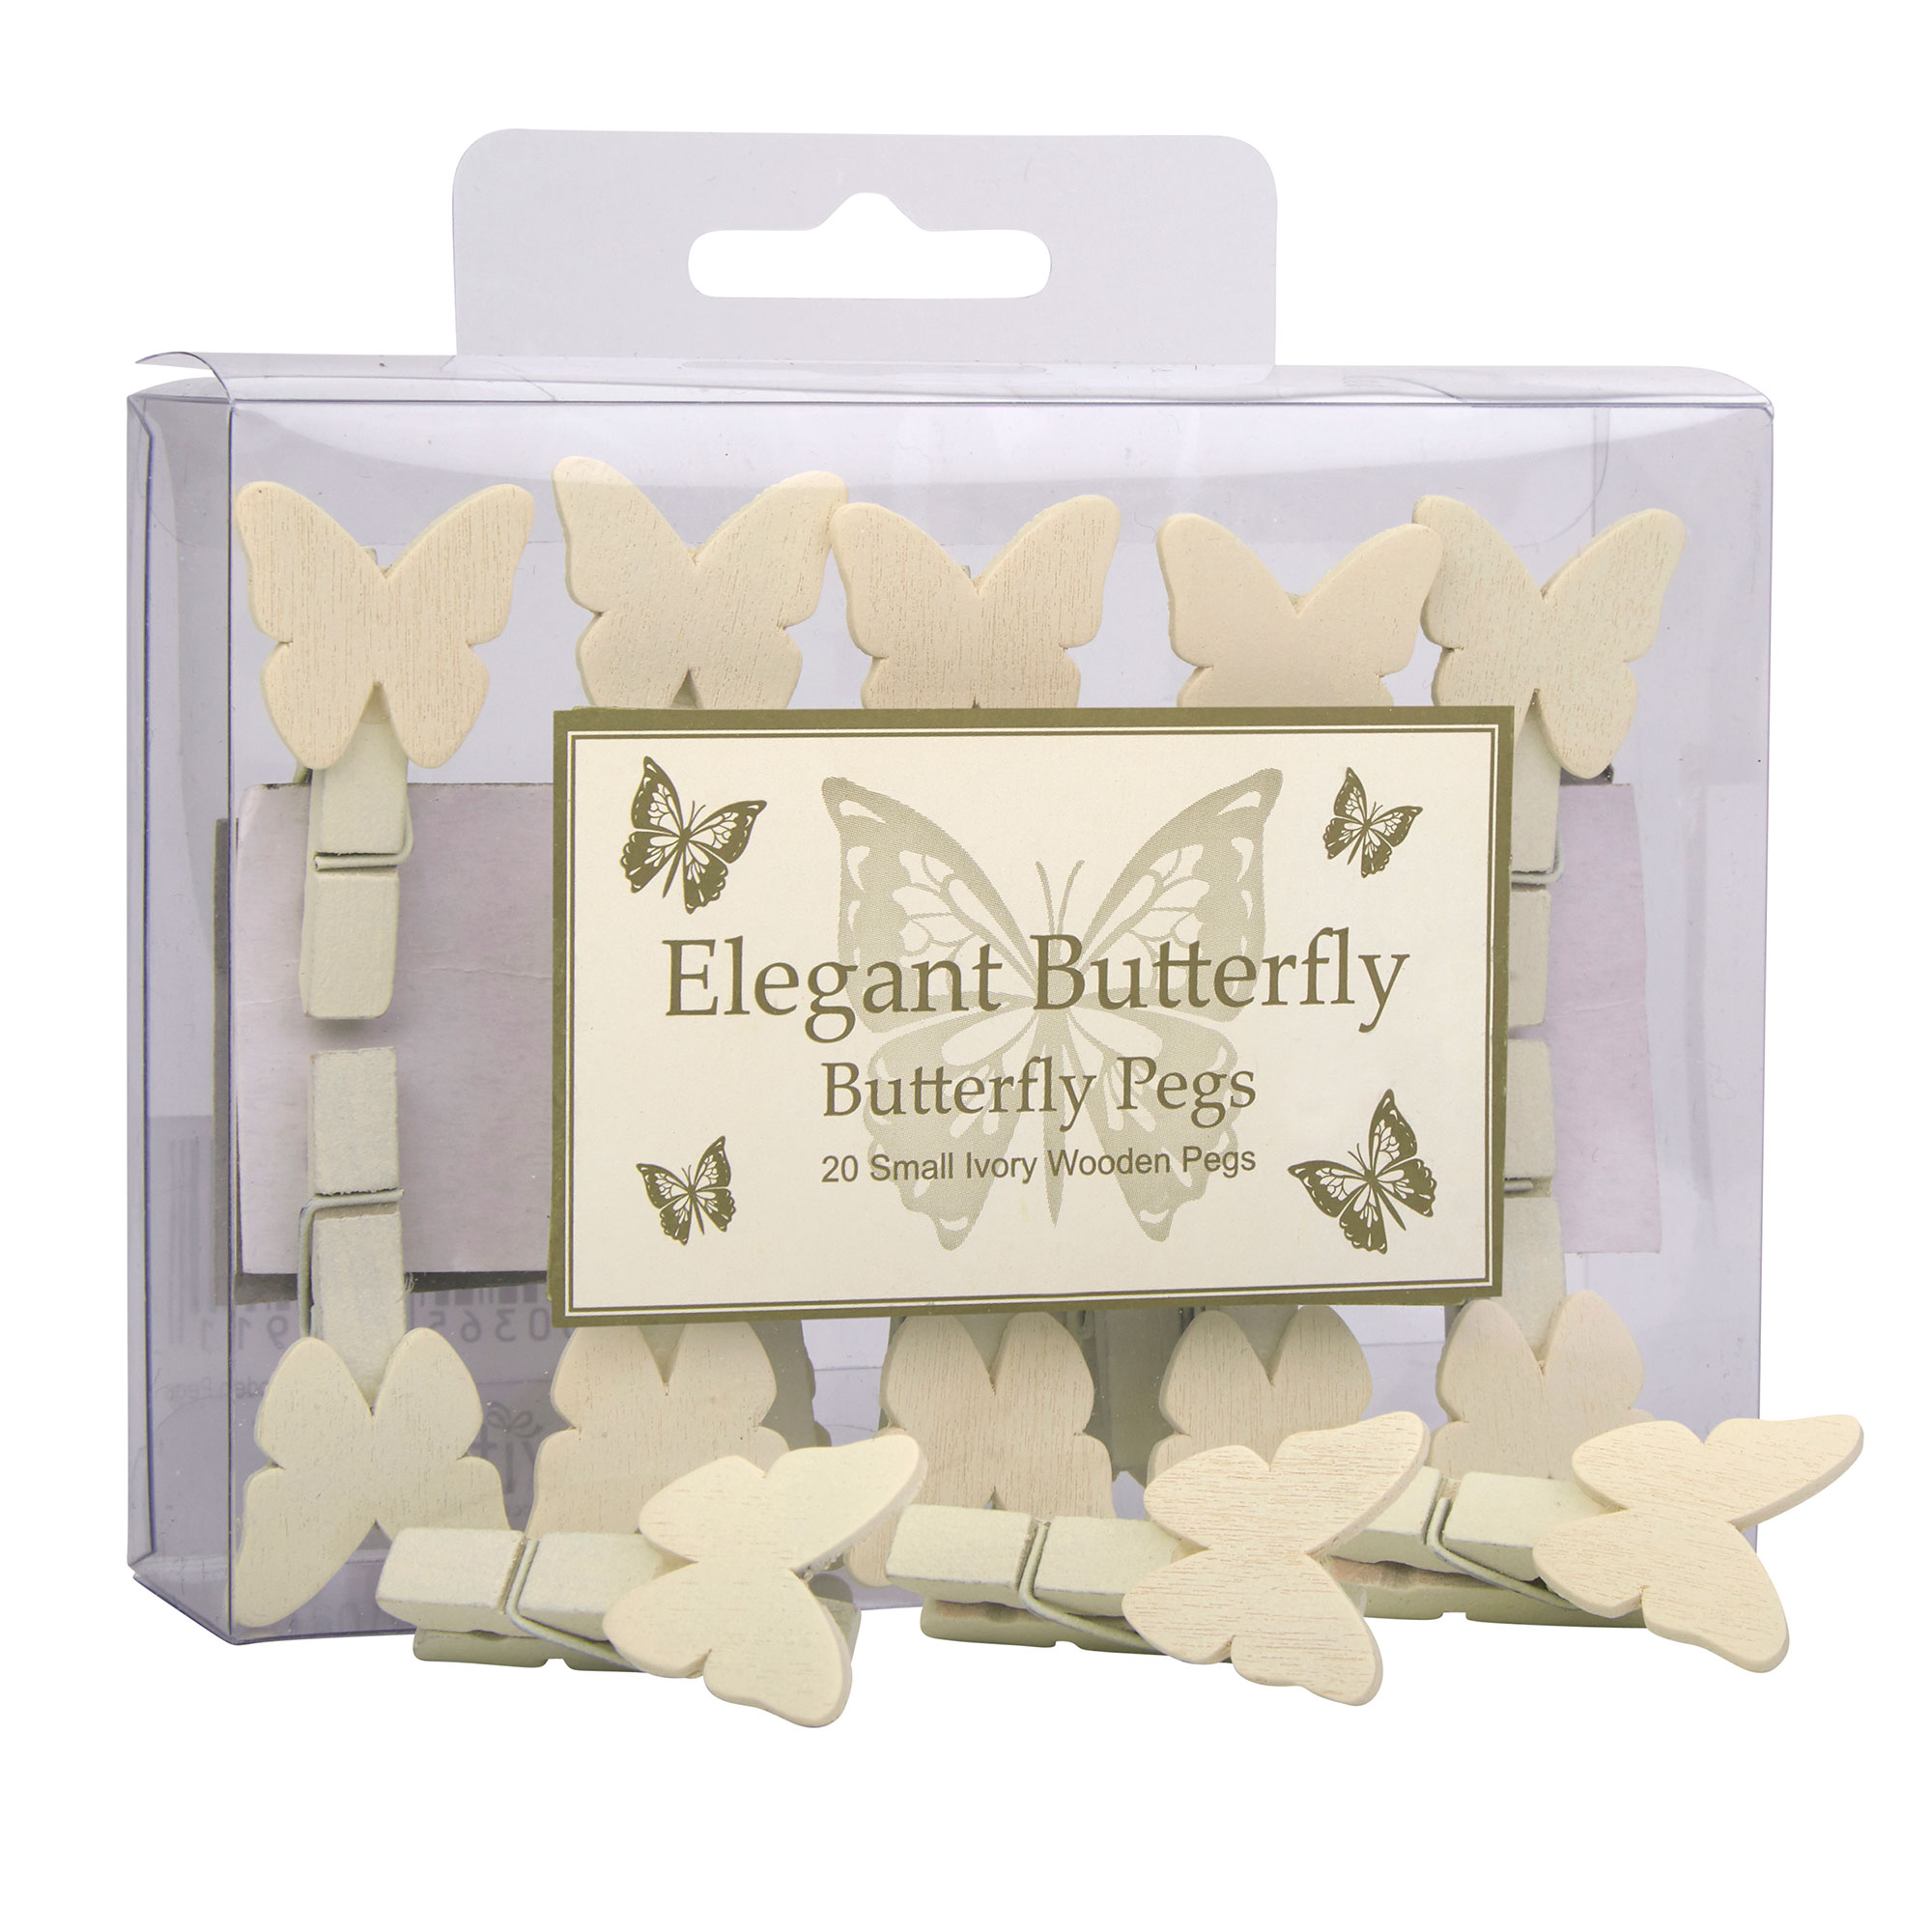 Ivory Butterfly Pegs - 20 Pack